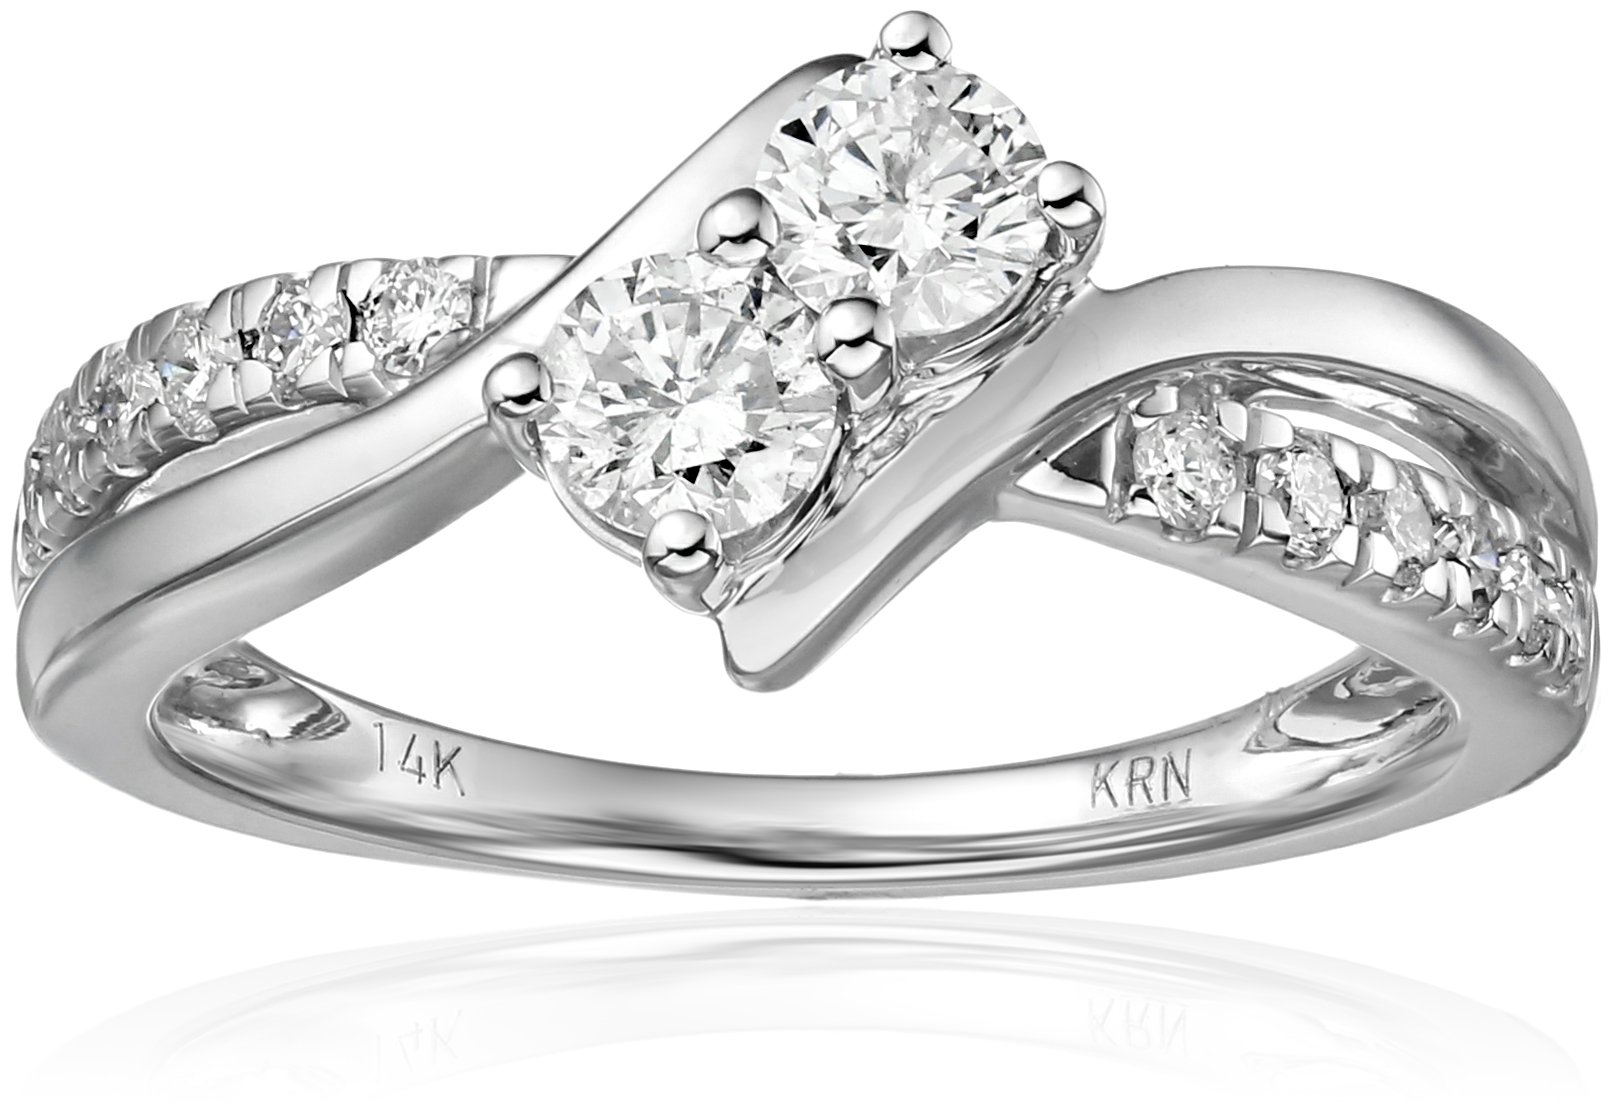 Two Stone Diamond 14k White Gold Ring (3/4cttw, H-I Color, I2 Clarity), Size 7